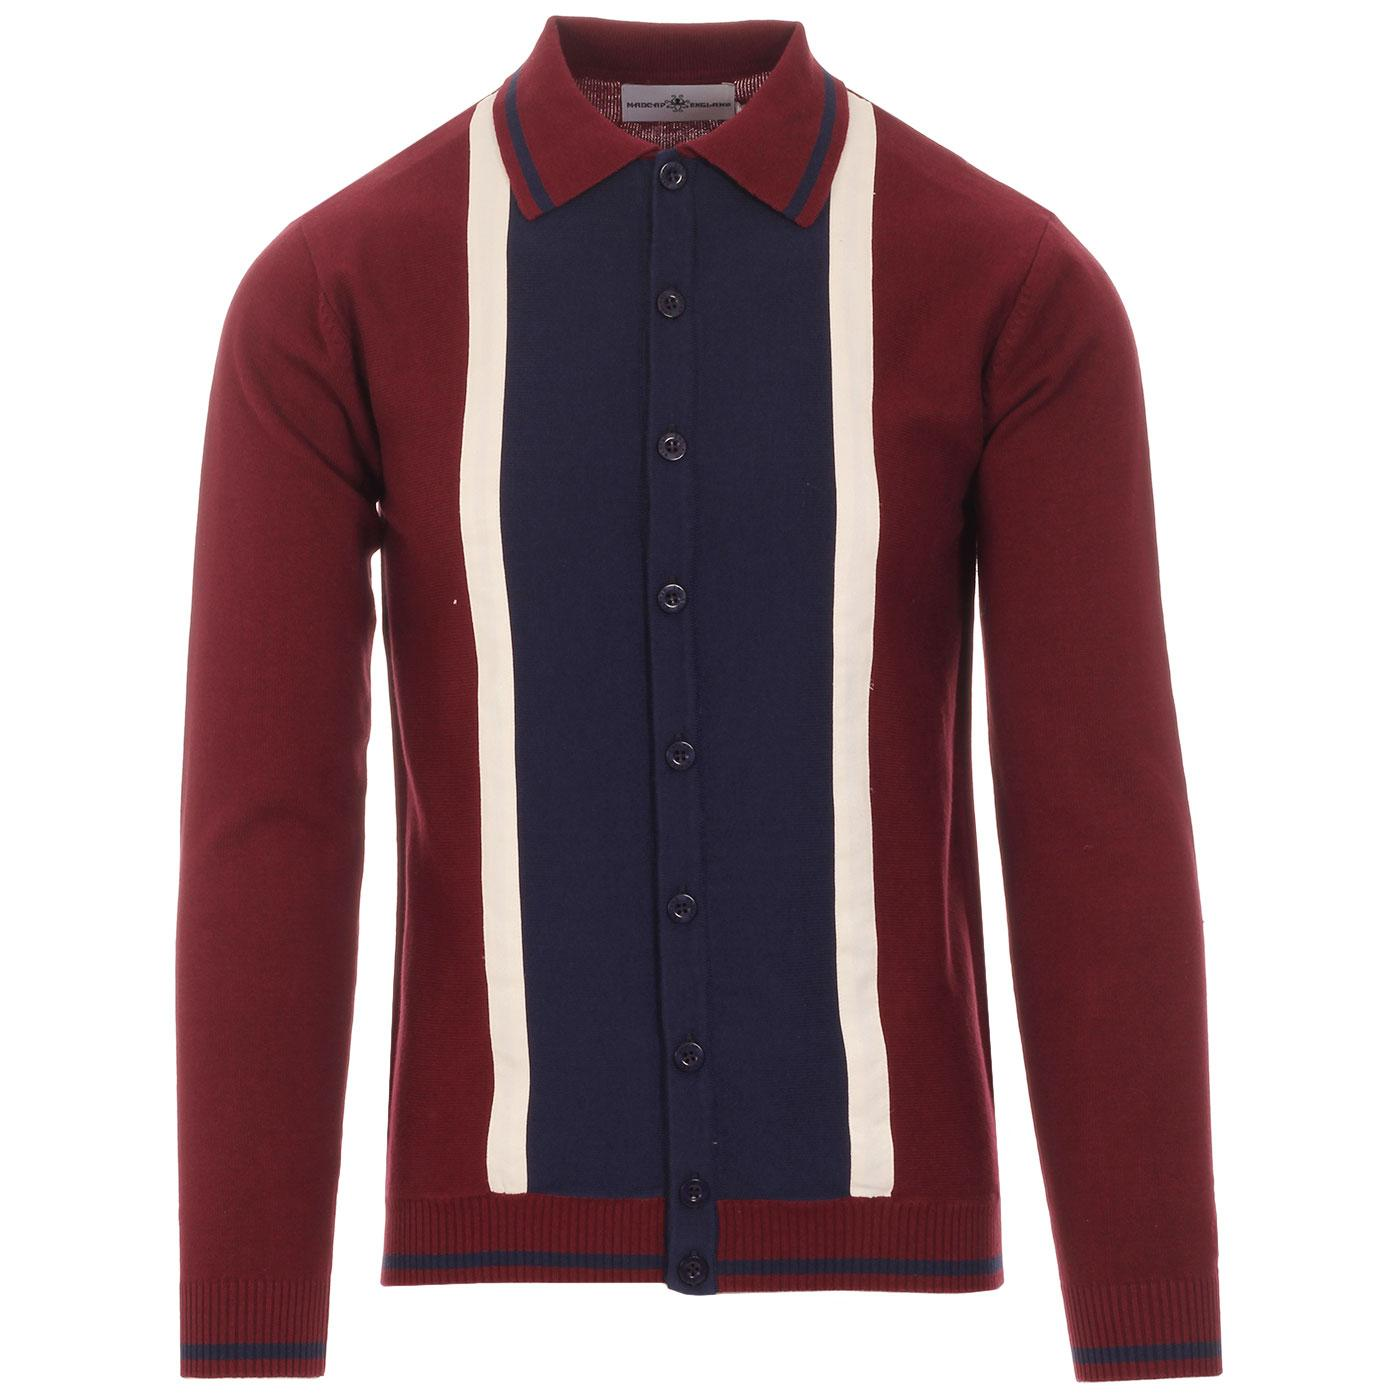 Madcap England Marriott Suede 1960s Mod Knitted Button Through Polo Shirt in Zinfandel